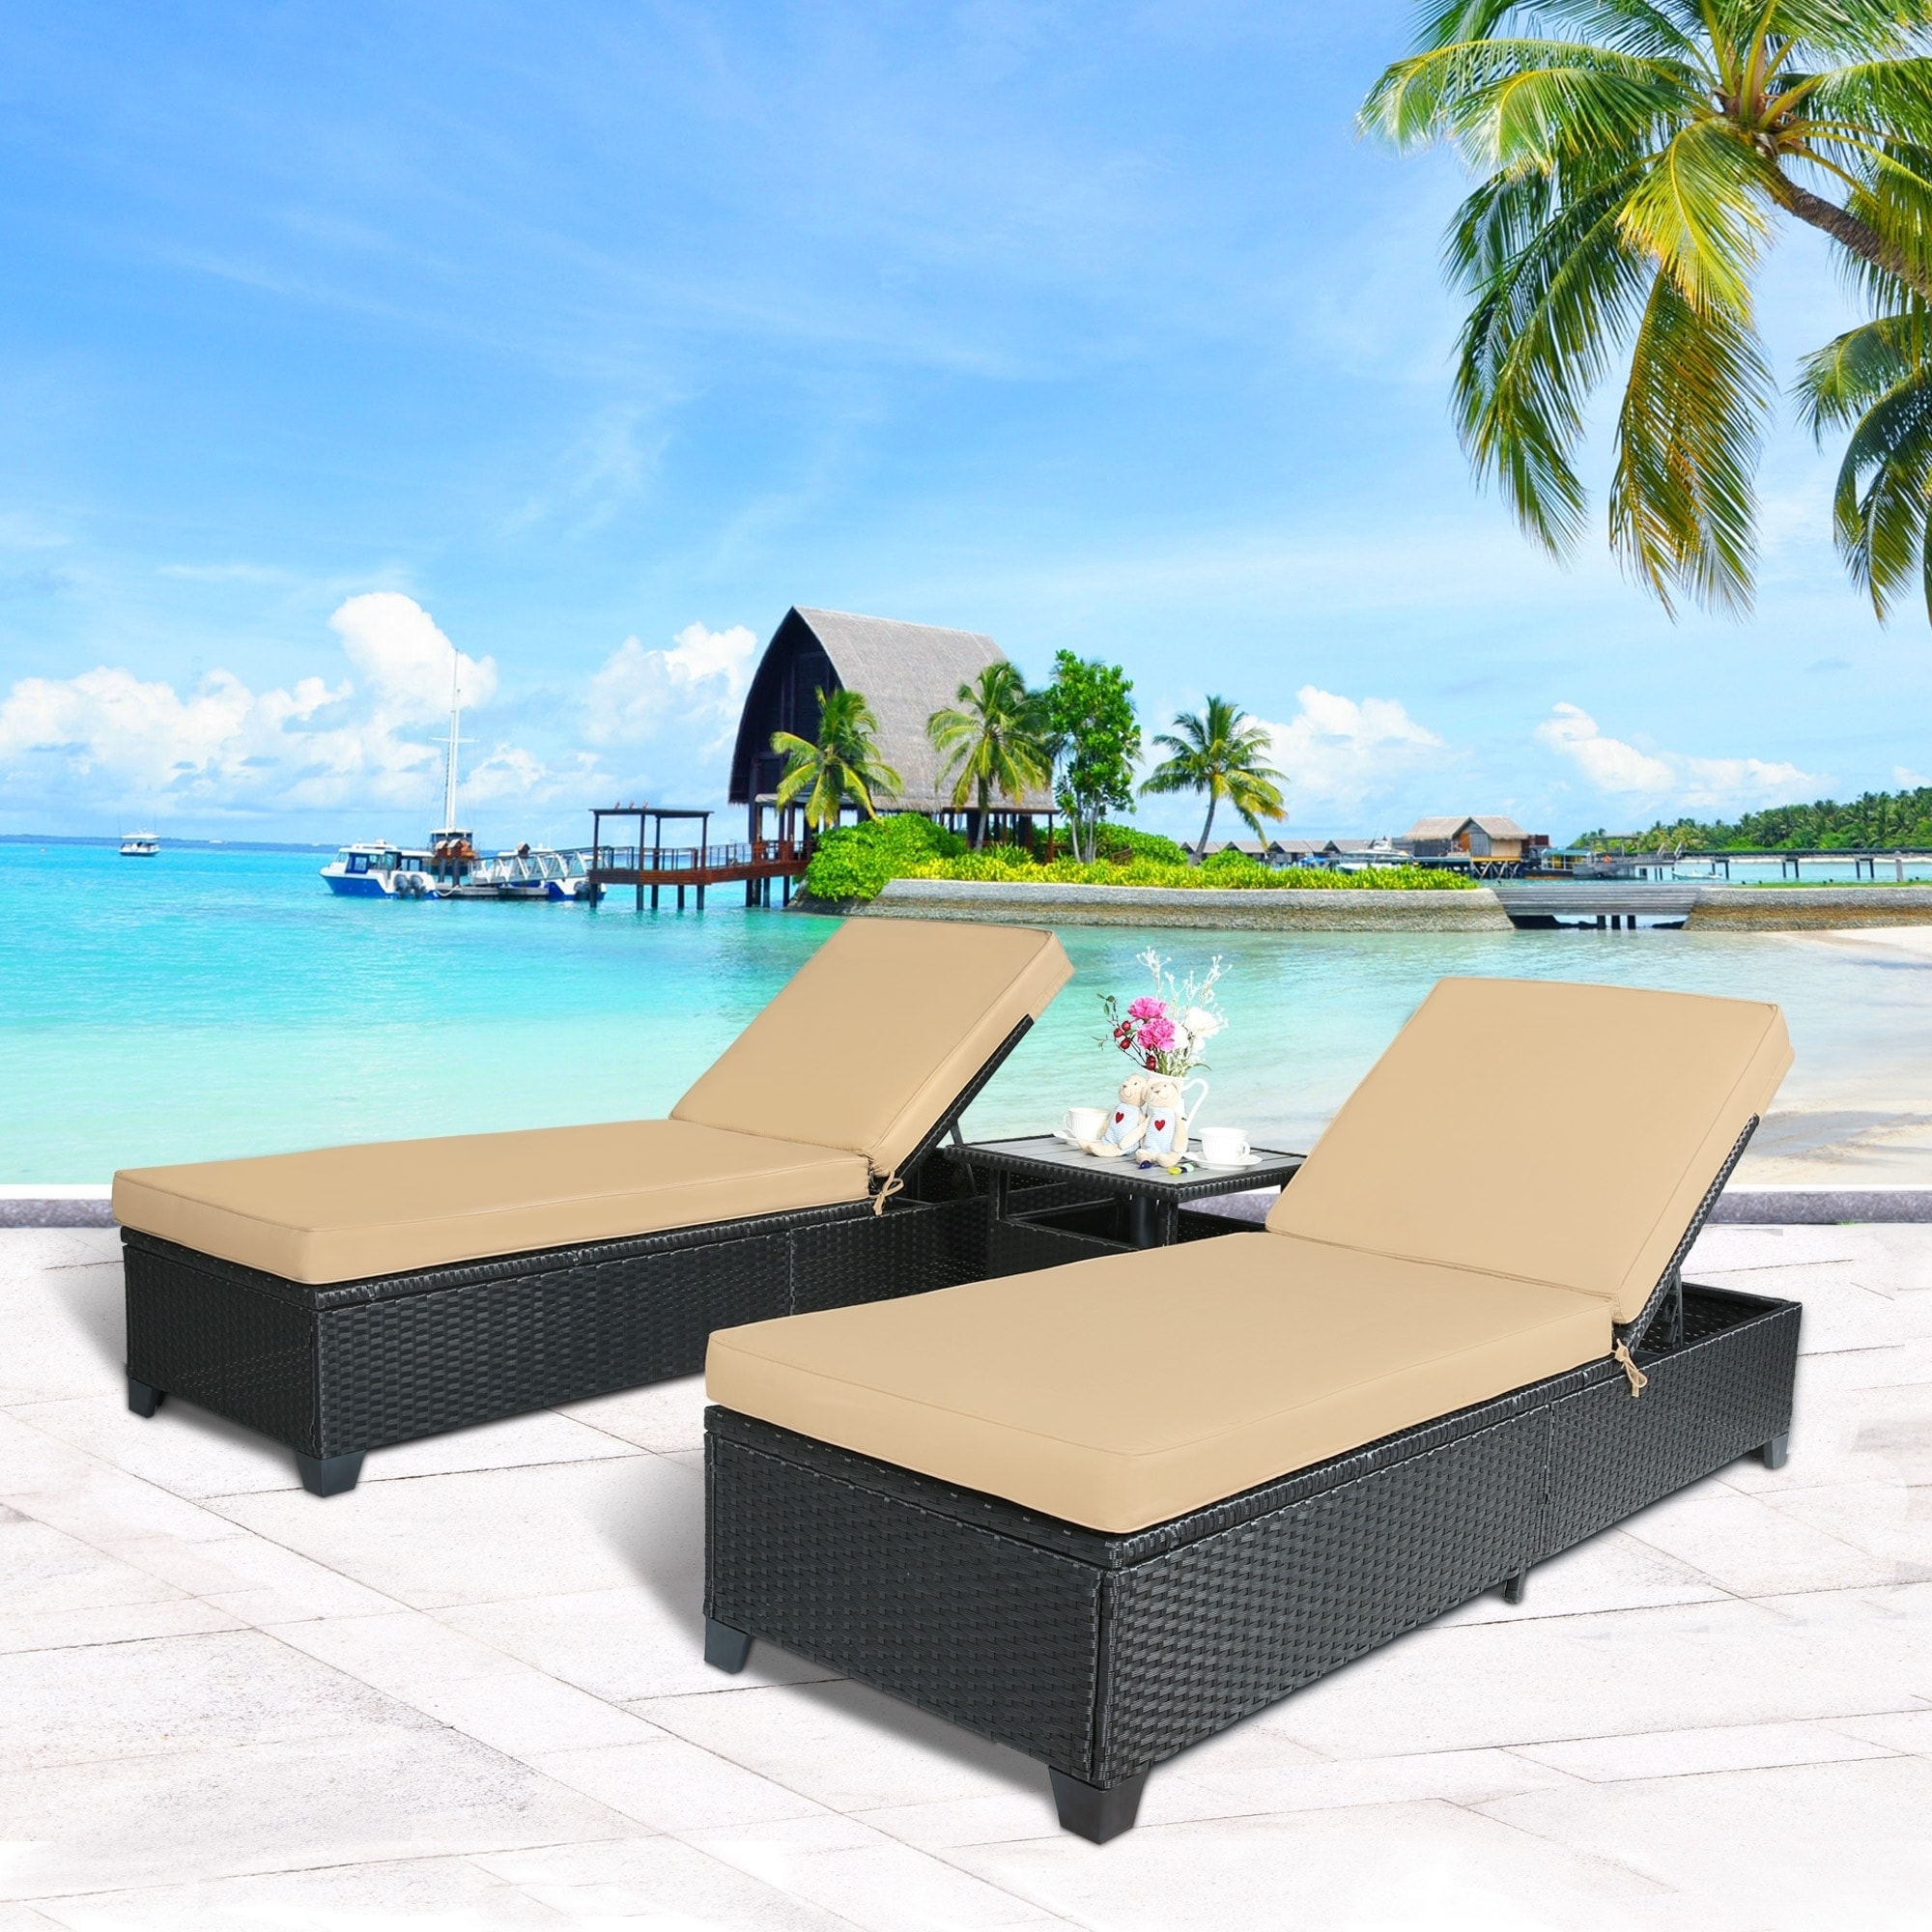 daybed outdoor sunlounger project chaise lounger lounge magic china product furniture hotel garden style patio double wicker rattan evcnjdxabycn